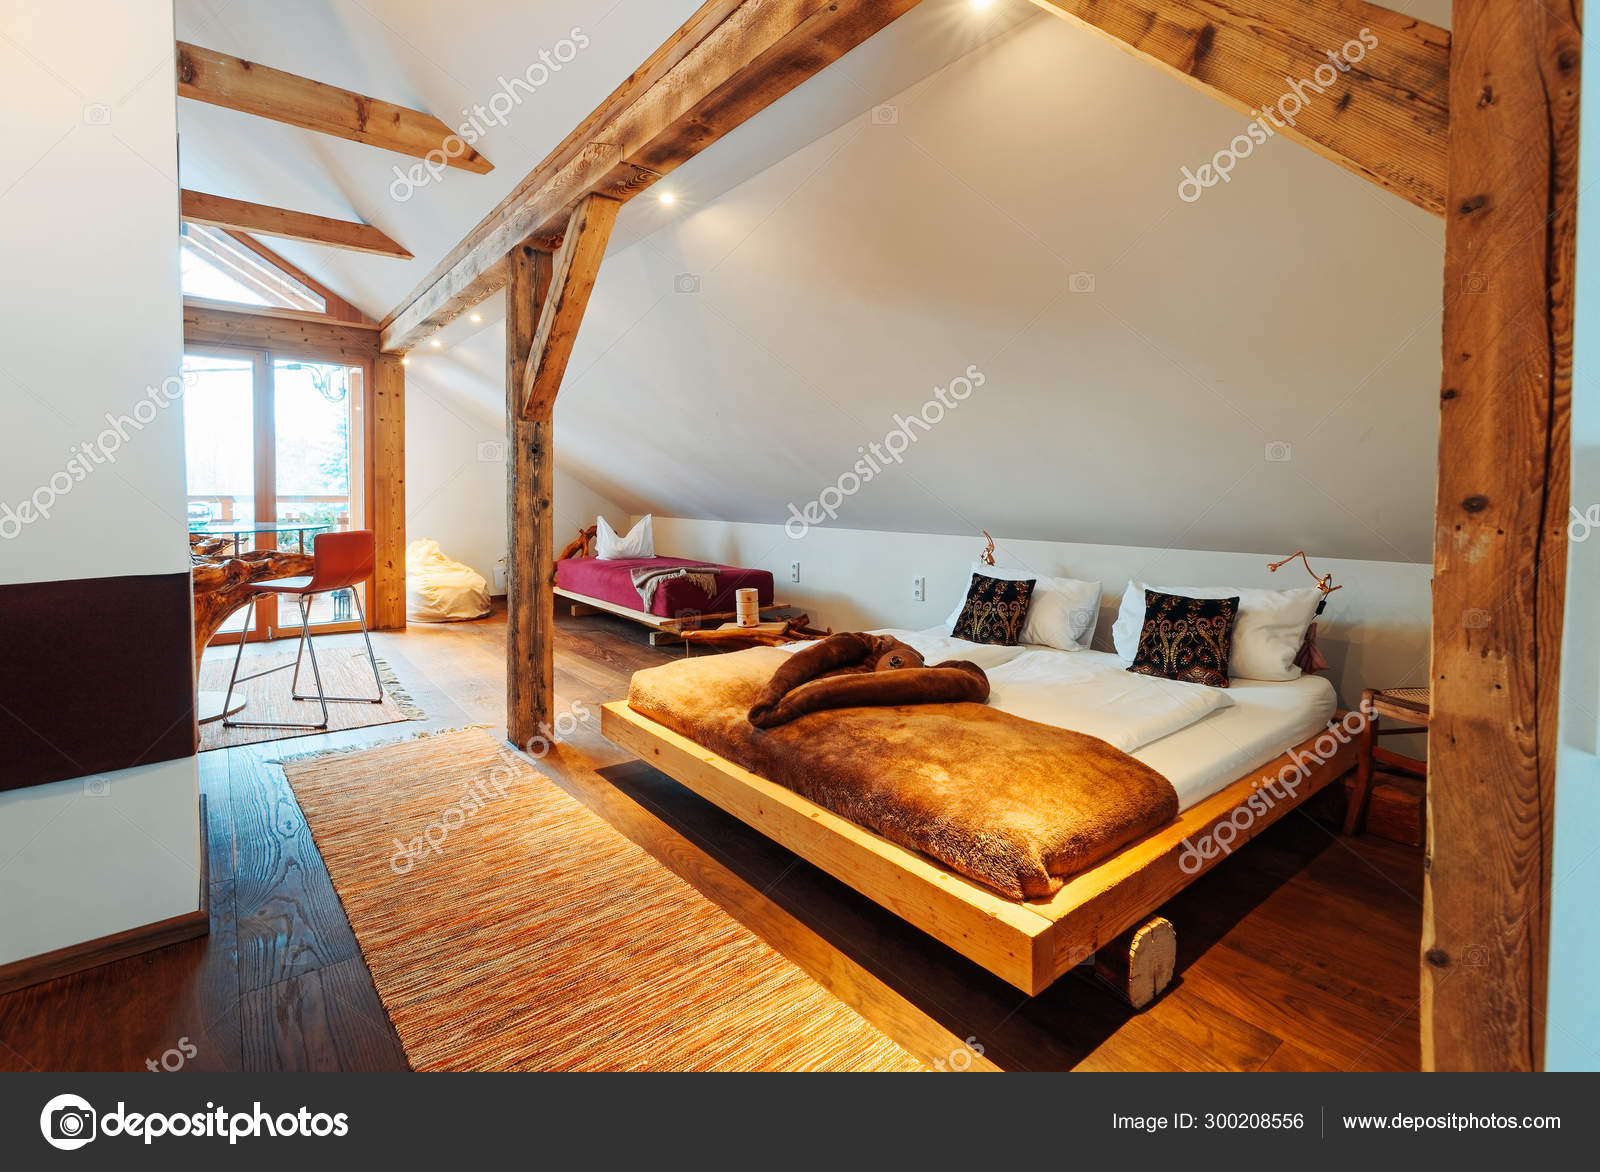 Interior Of Bedroom Modern Wood Design Of Bed Stock Photo C Erix2005 300208556